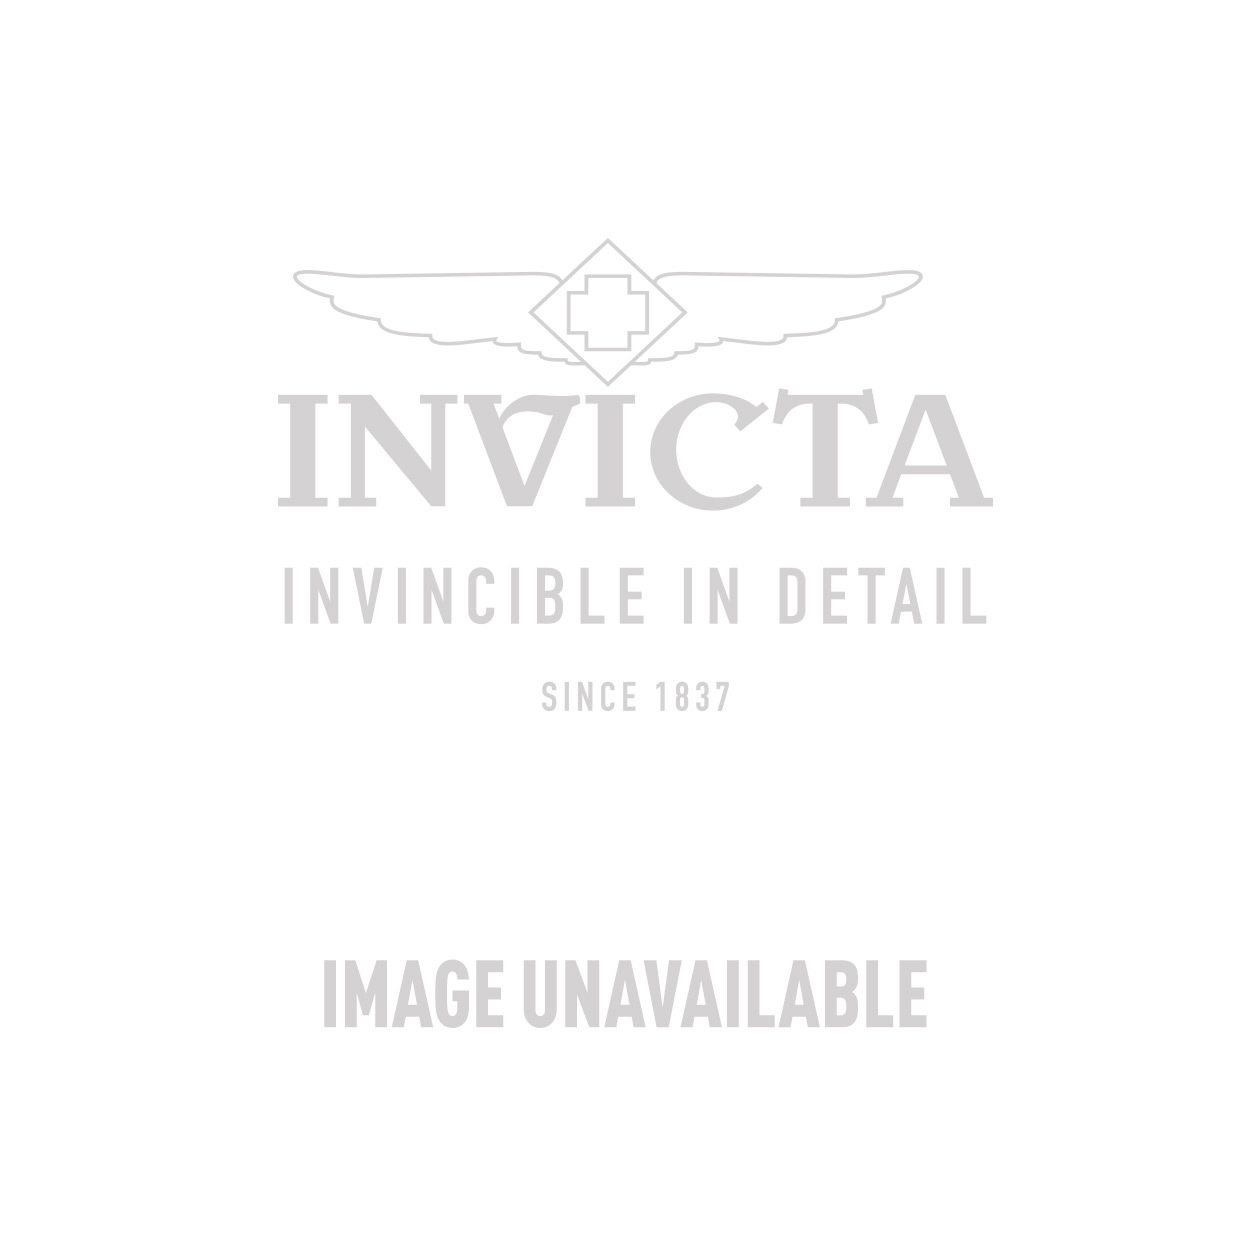 Invicta 1 Slot Impact Case - Model DC1MGRN/BLU